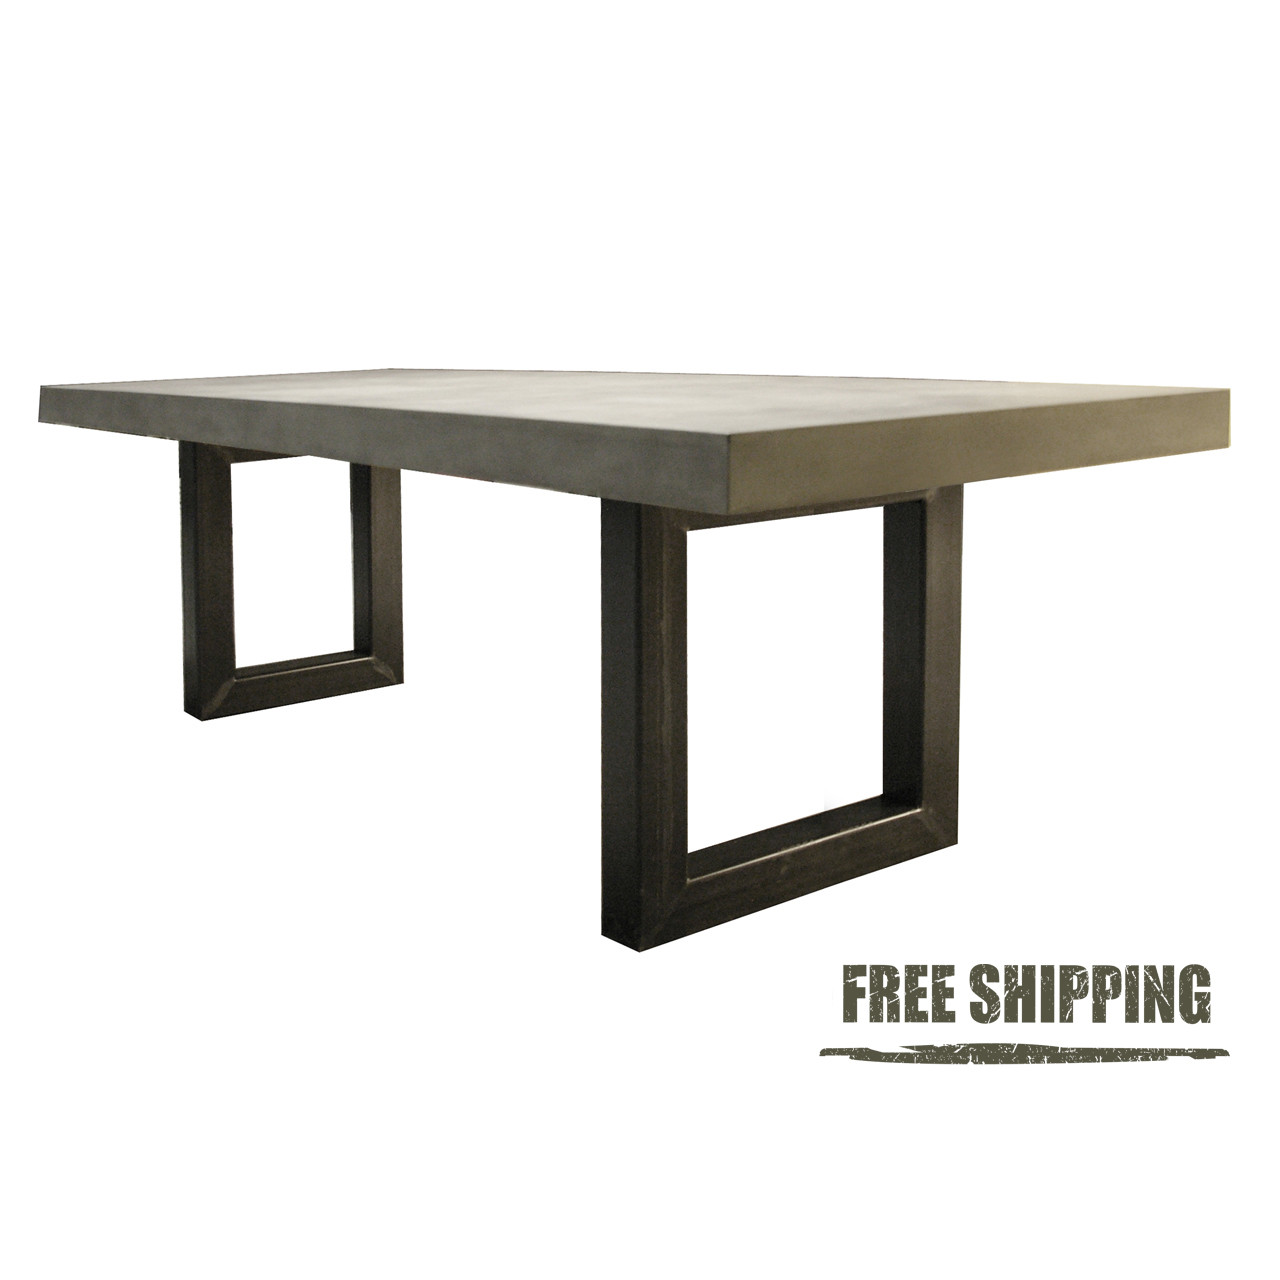 Concrete Dining Room Table: Zen Concrete Dining Table